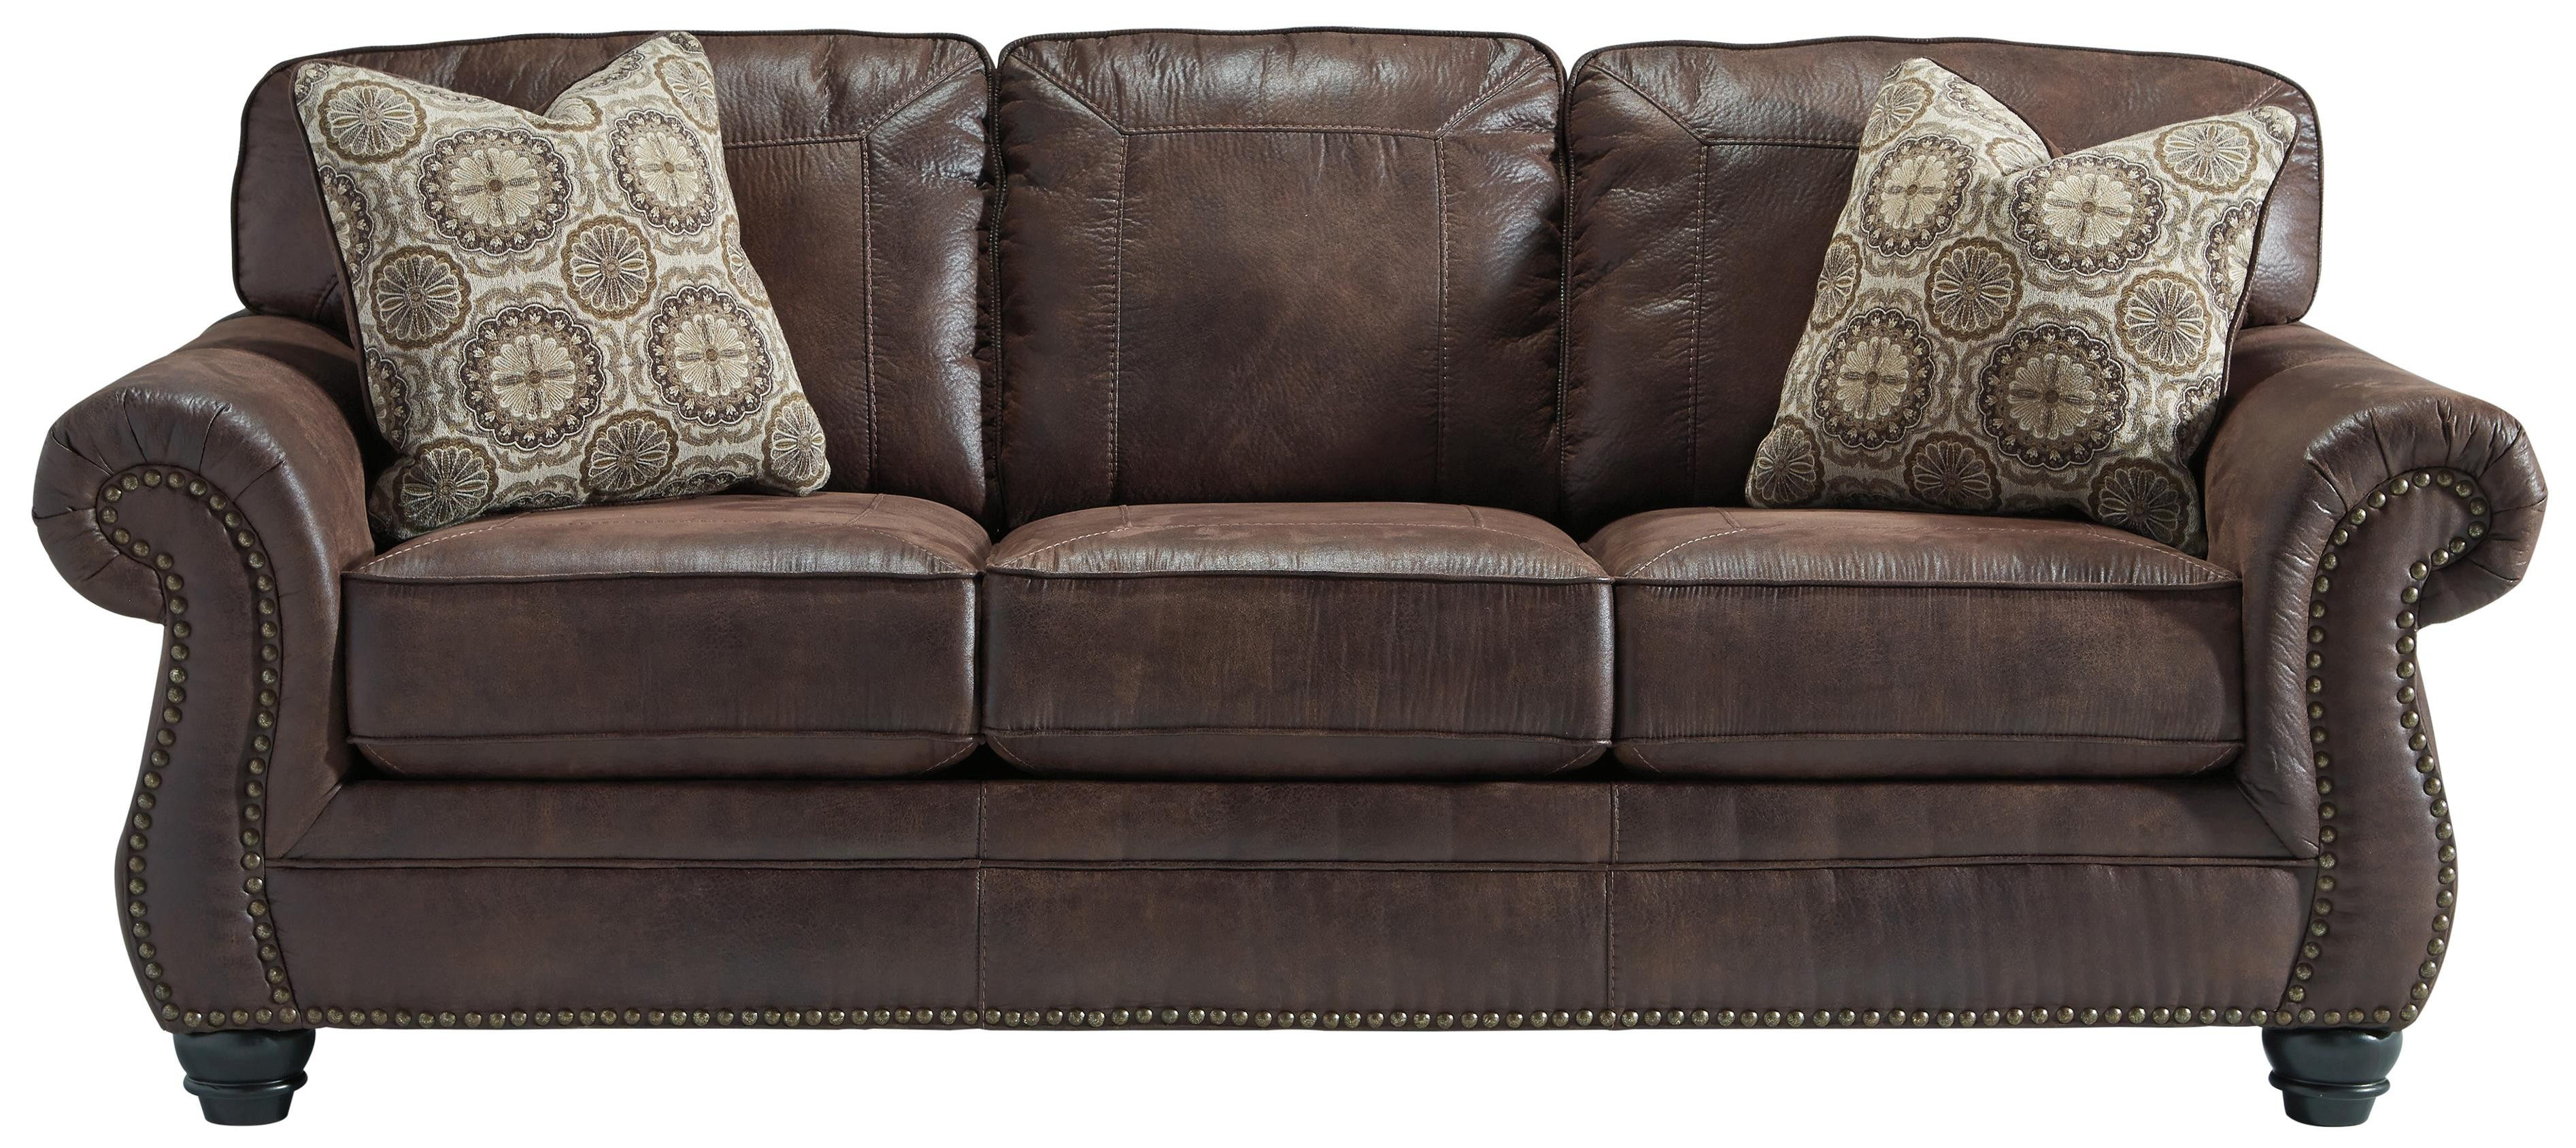 Faux Leather Sleeper sofa Fantastic attractive Leather Queen Sleeper sofa Great Living Room Furniture Design